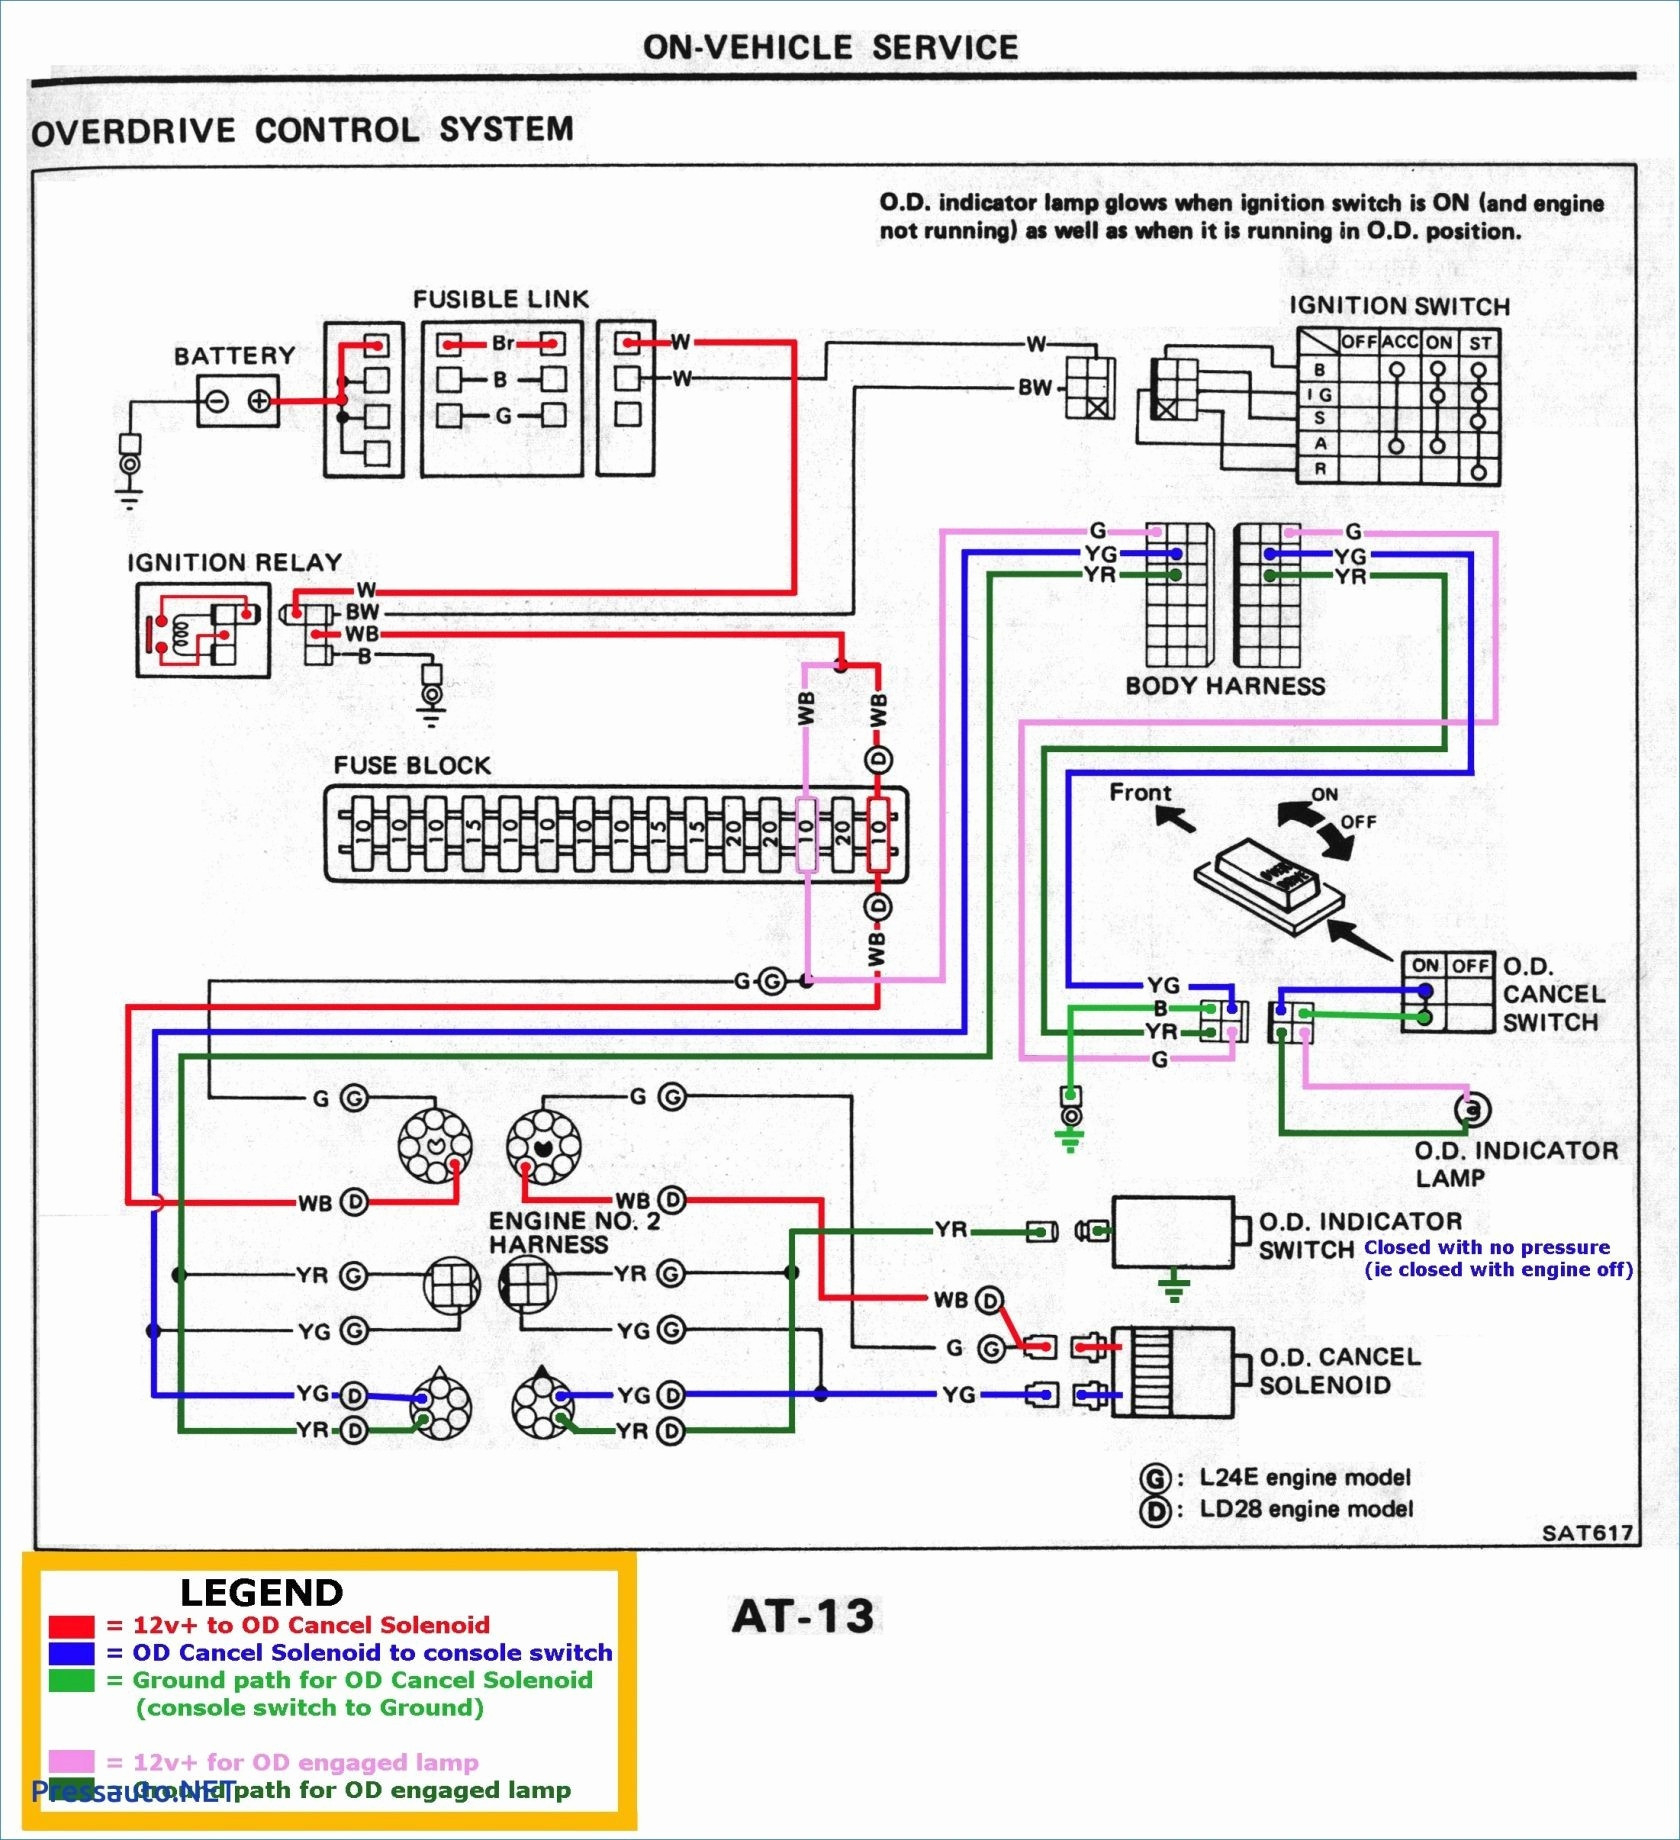 warn a2000 winch wiring diagram Download-Ac Winch Wiring Diagram Refrence Wiring Diagram for Warn Winch Fresh Wiring Diagram Warn A2000 Wiring 3-t